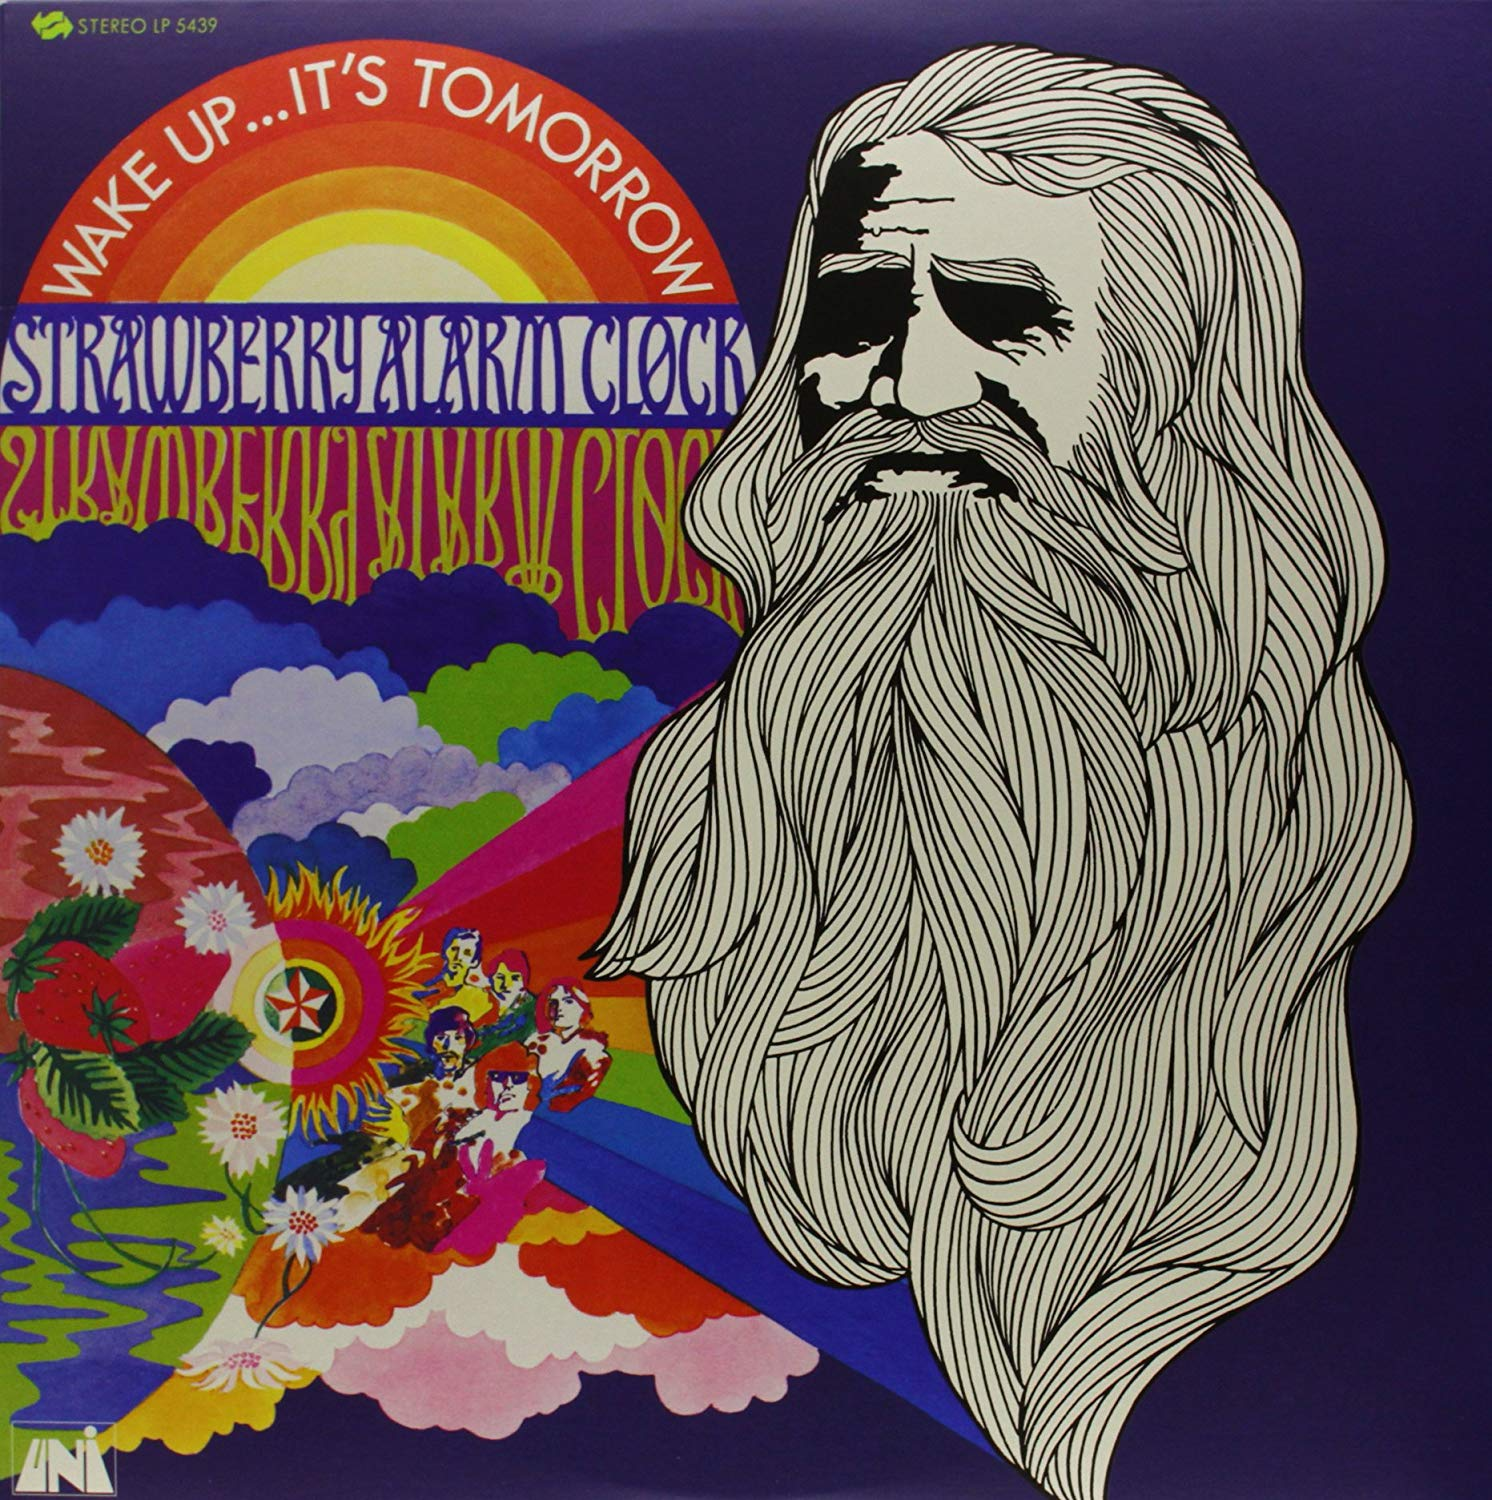 STRAWBERRY ALARM CLOCK- WAKE UP...IT'S TOMORROW - VINYL LP - Wah Wah Records